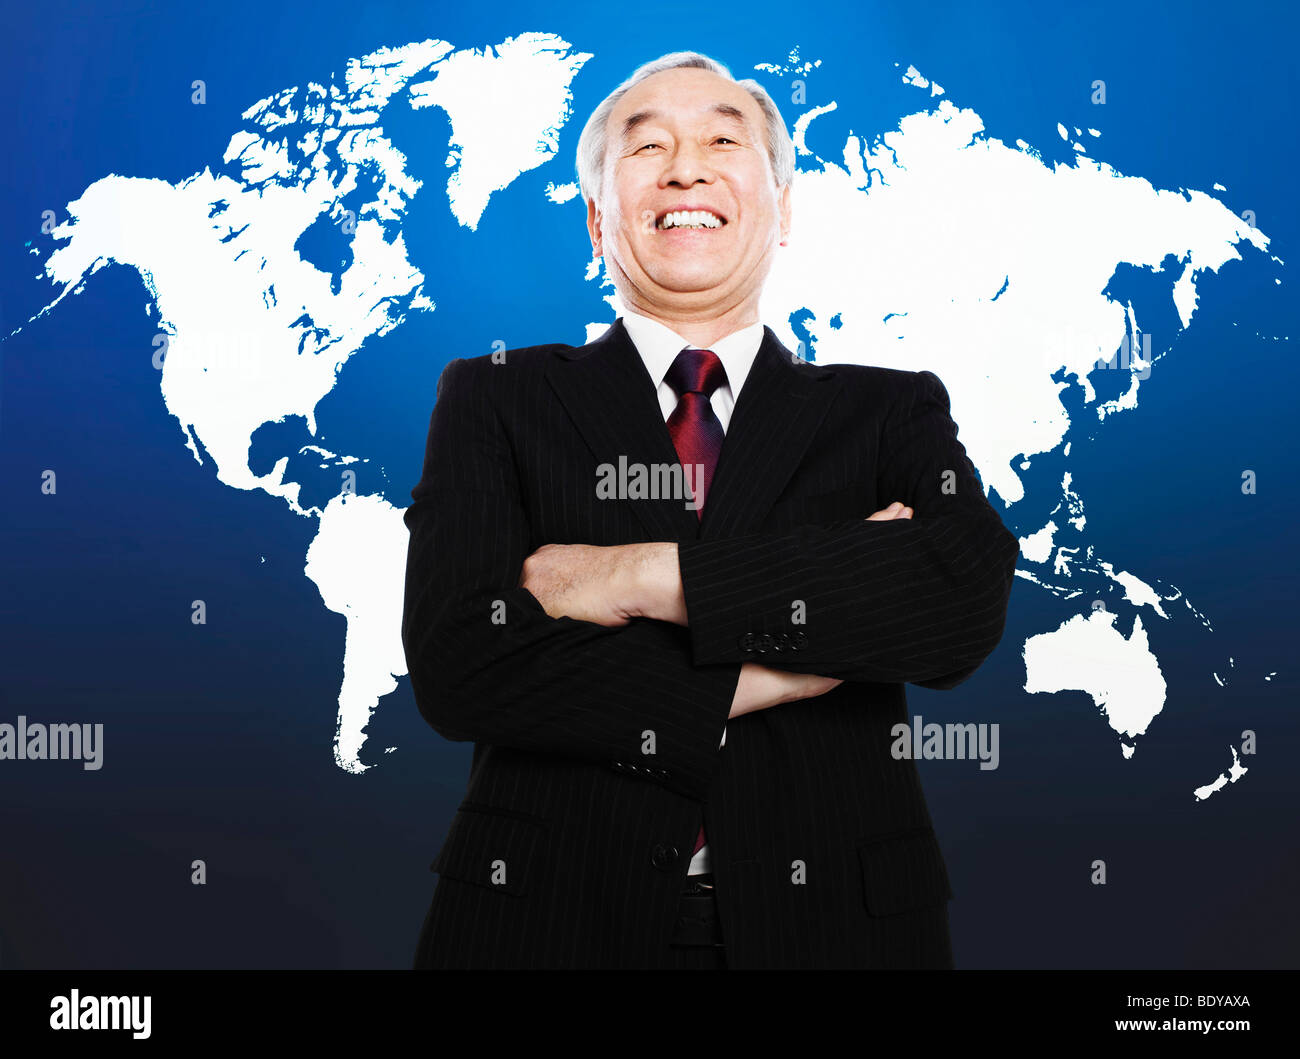 Asian man smiling in front of world map Photo Stock